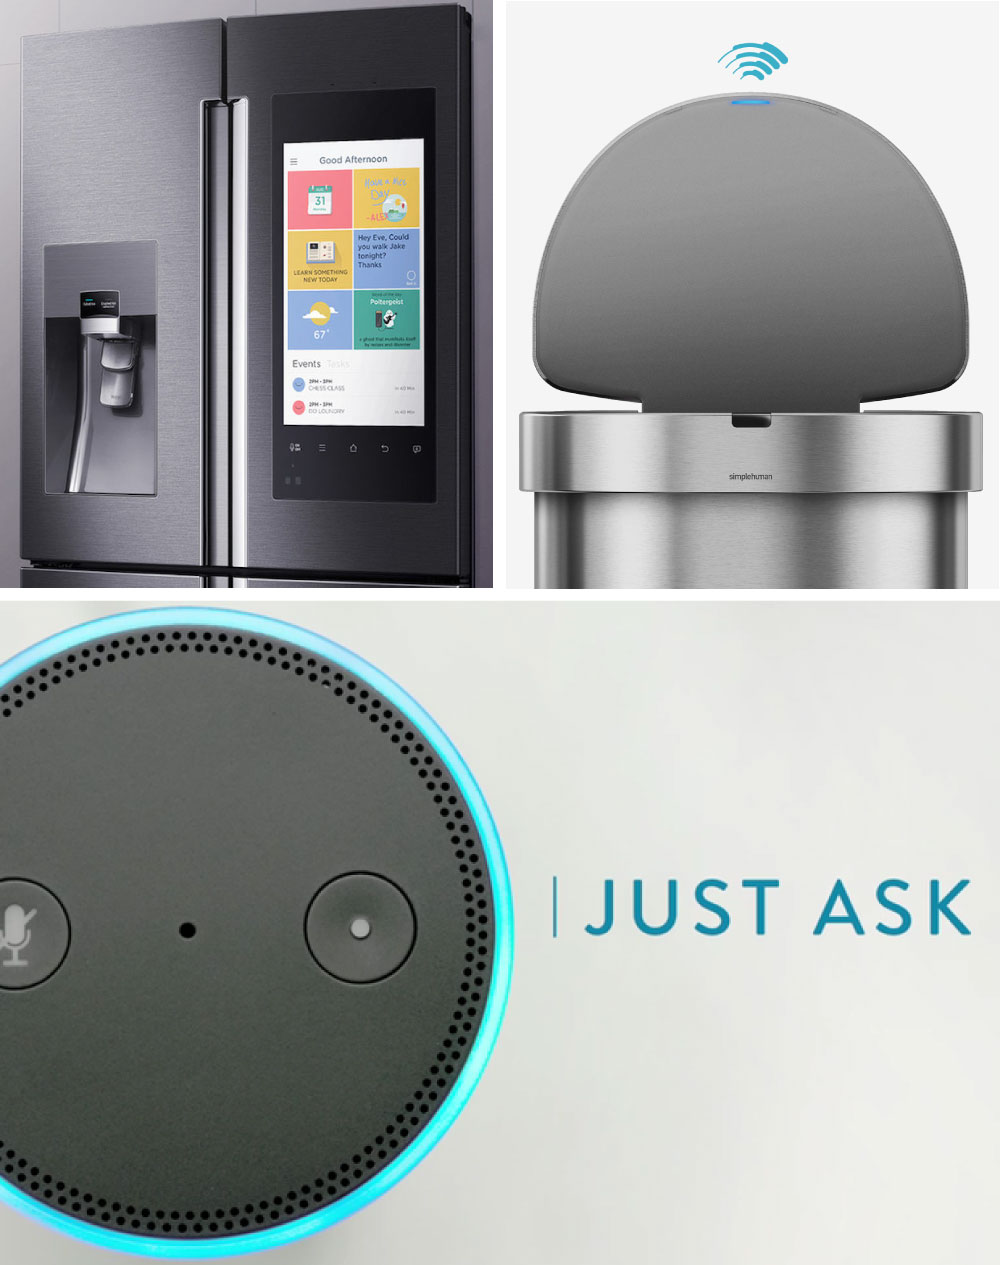 Amazon Echo | LG Smart InstaView Fridge | SimpleHuman Sensor Can